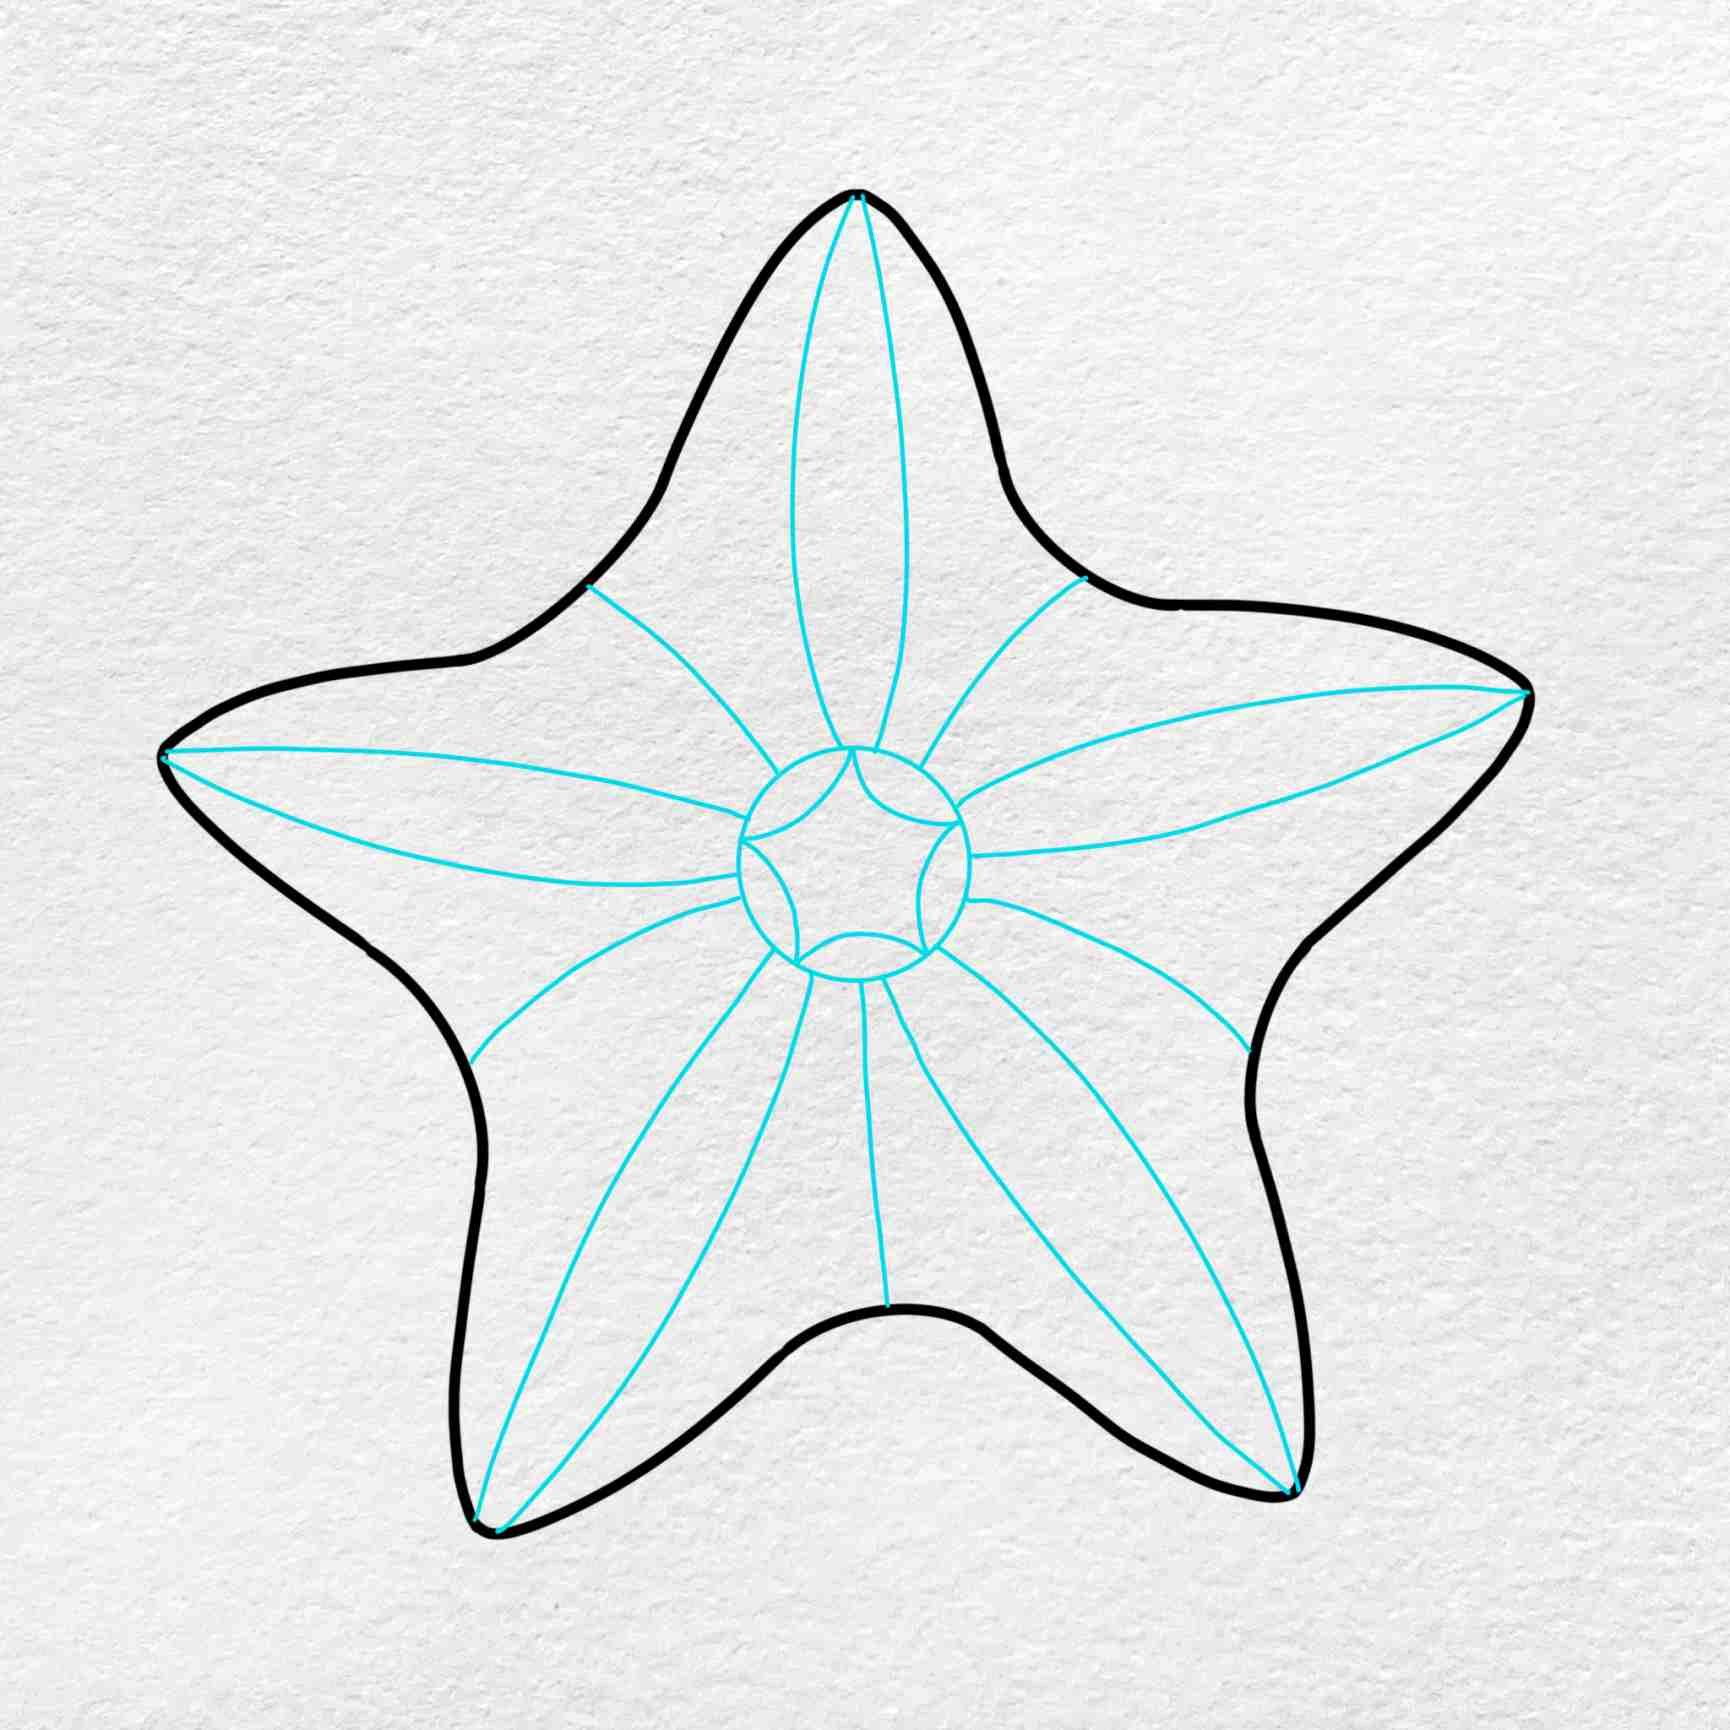 How To Draw A Starfish: Step 3